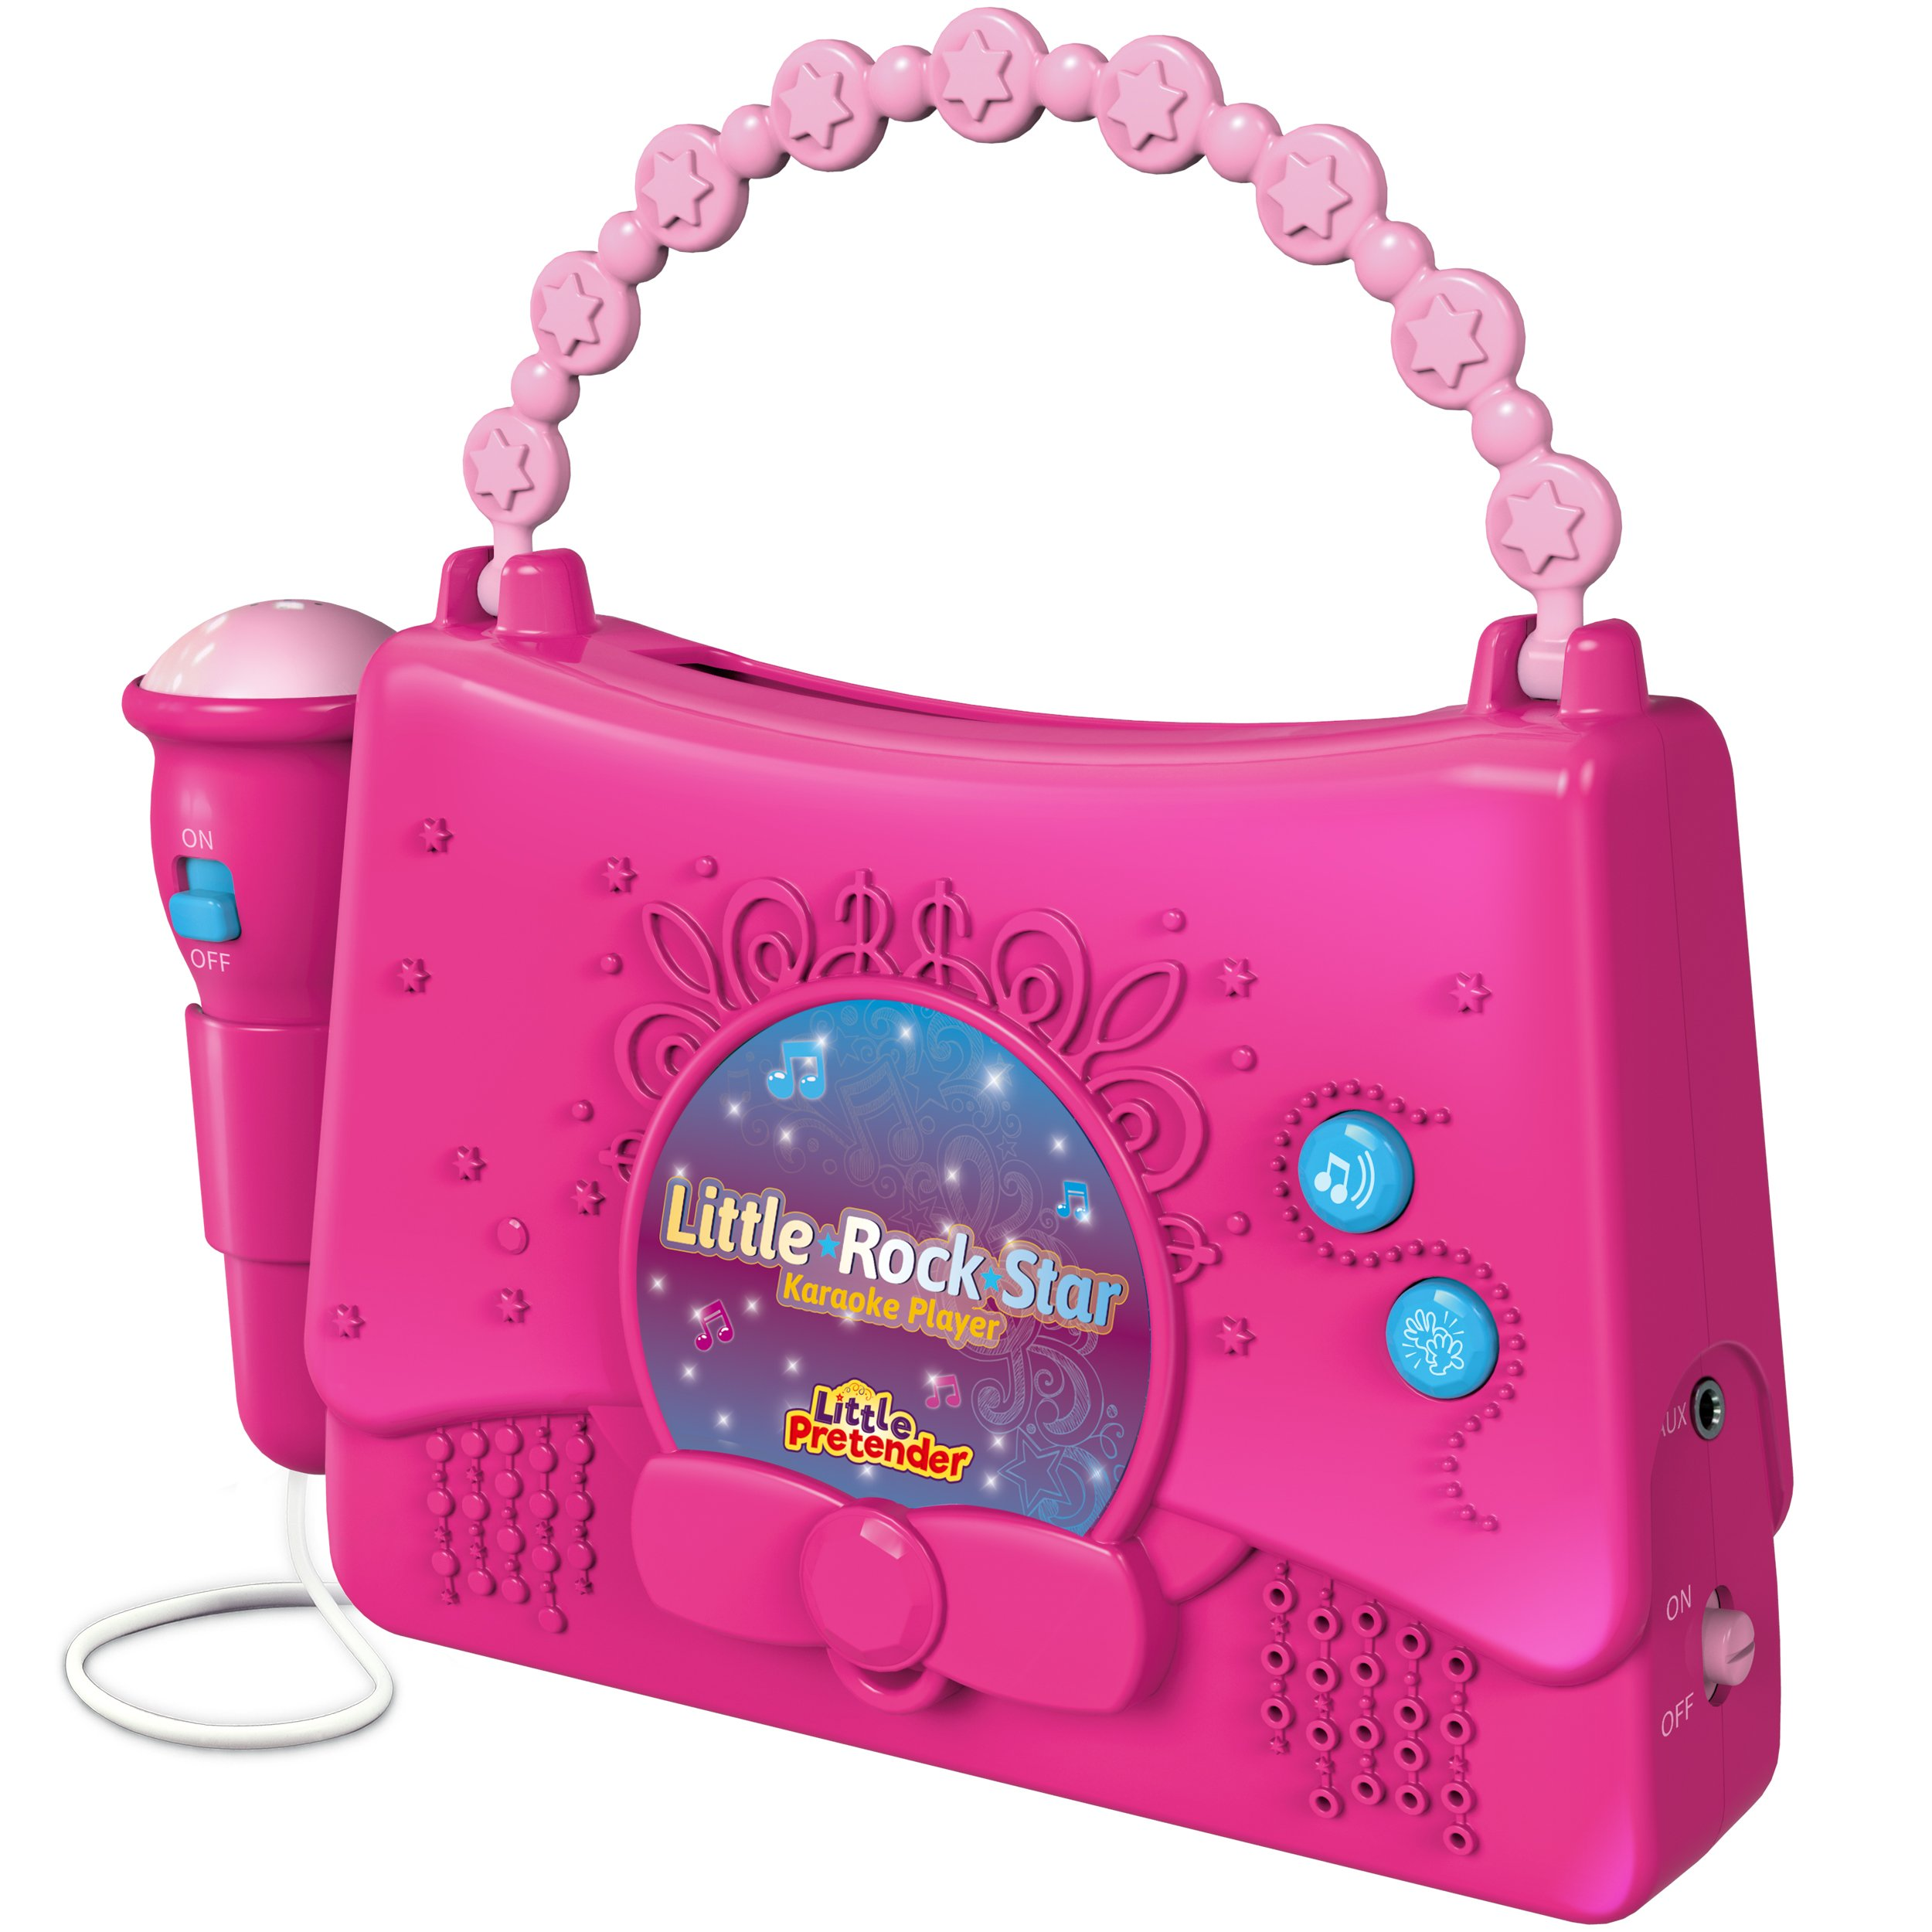 Kids Karaoke Machine for Girls - Little Rock Star Music Player - 10 Programmed Songs - iPod Holder - AUX Cable and Batteries Included by Little Pretender